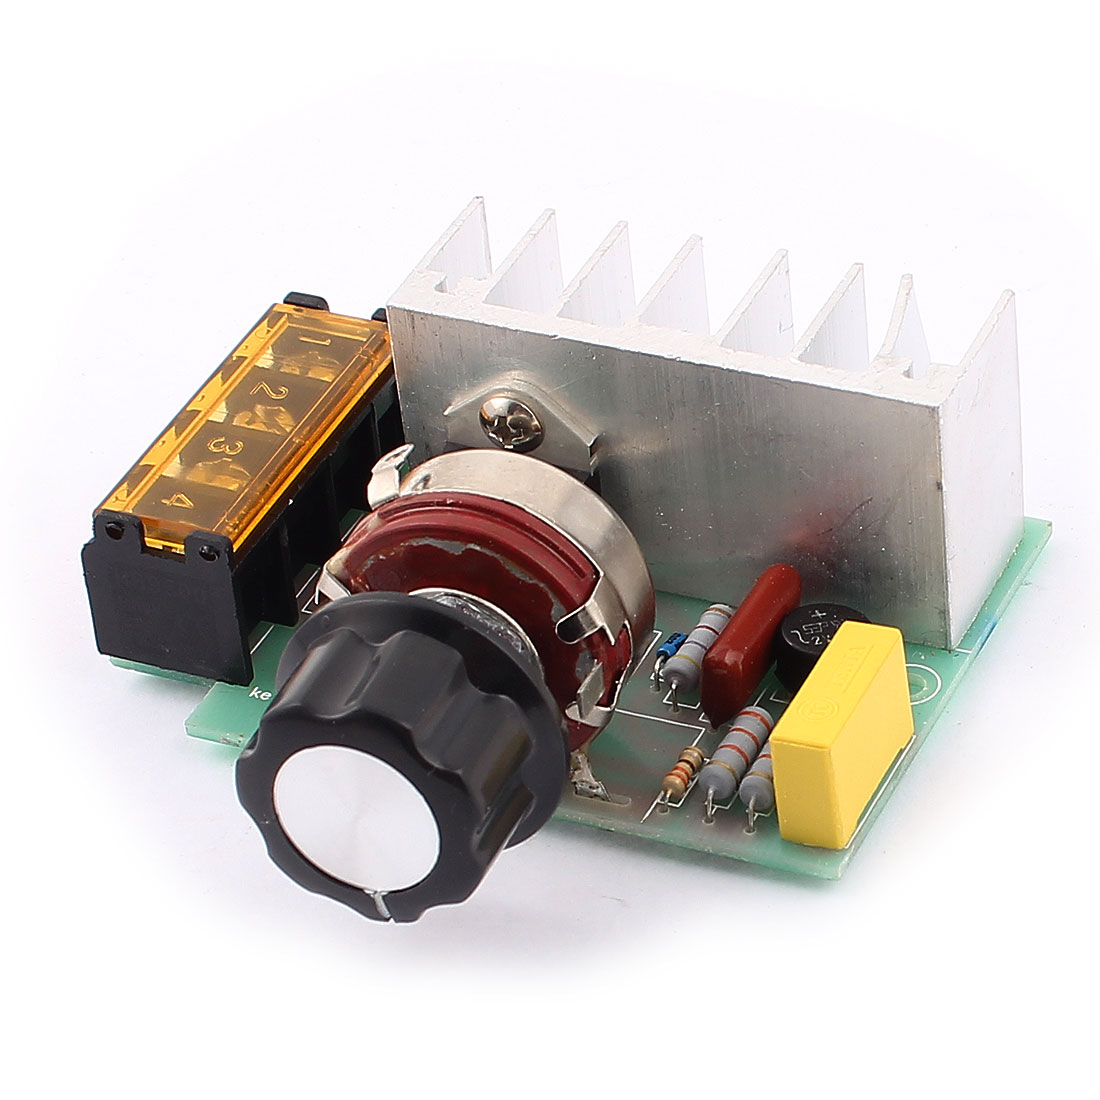 AC220V 4000W Potentiometer Control SCR Integrated Circuit Voltage Speed Dimmer Controller Thermostat Module